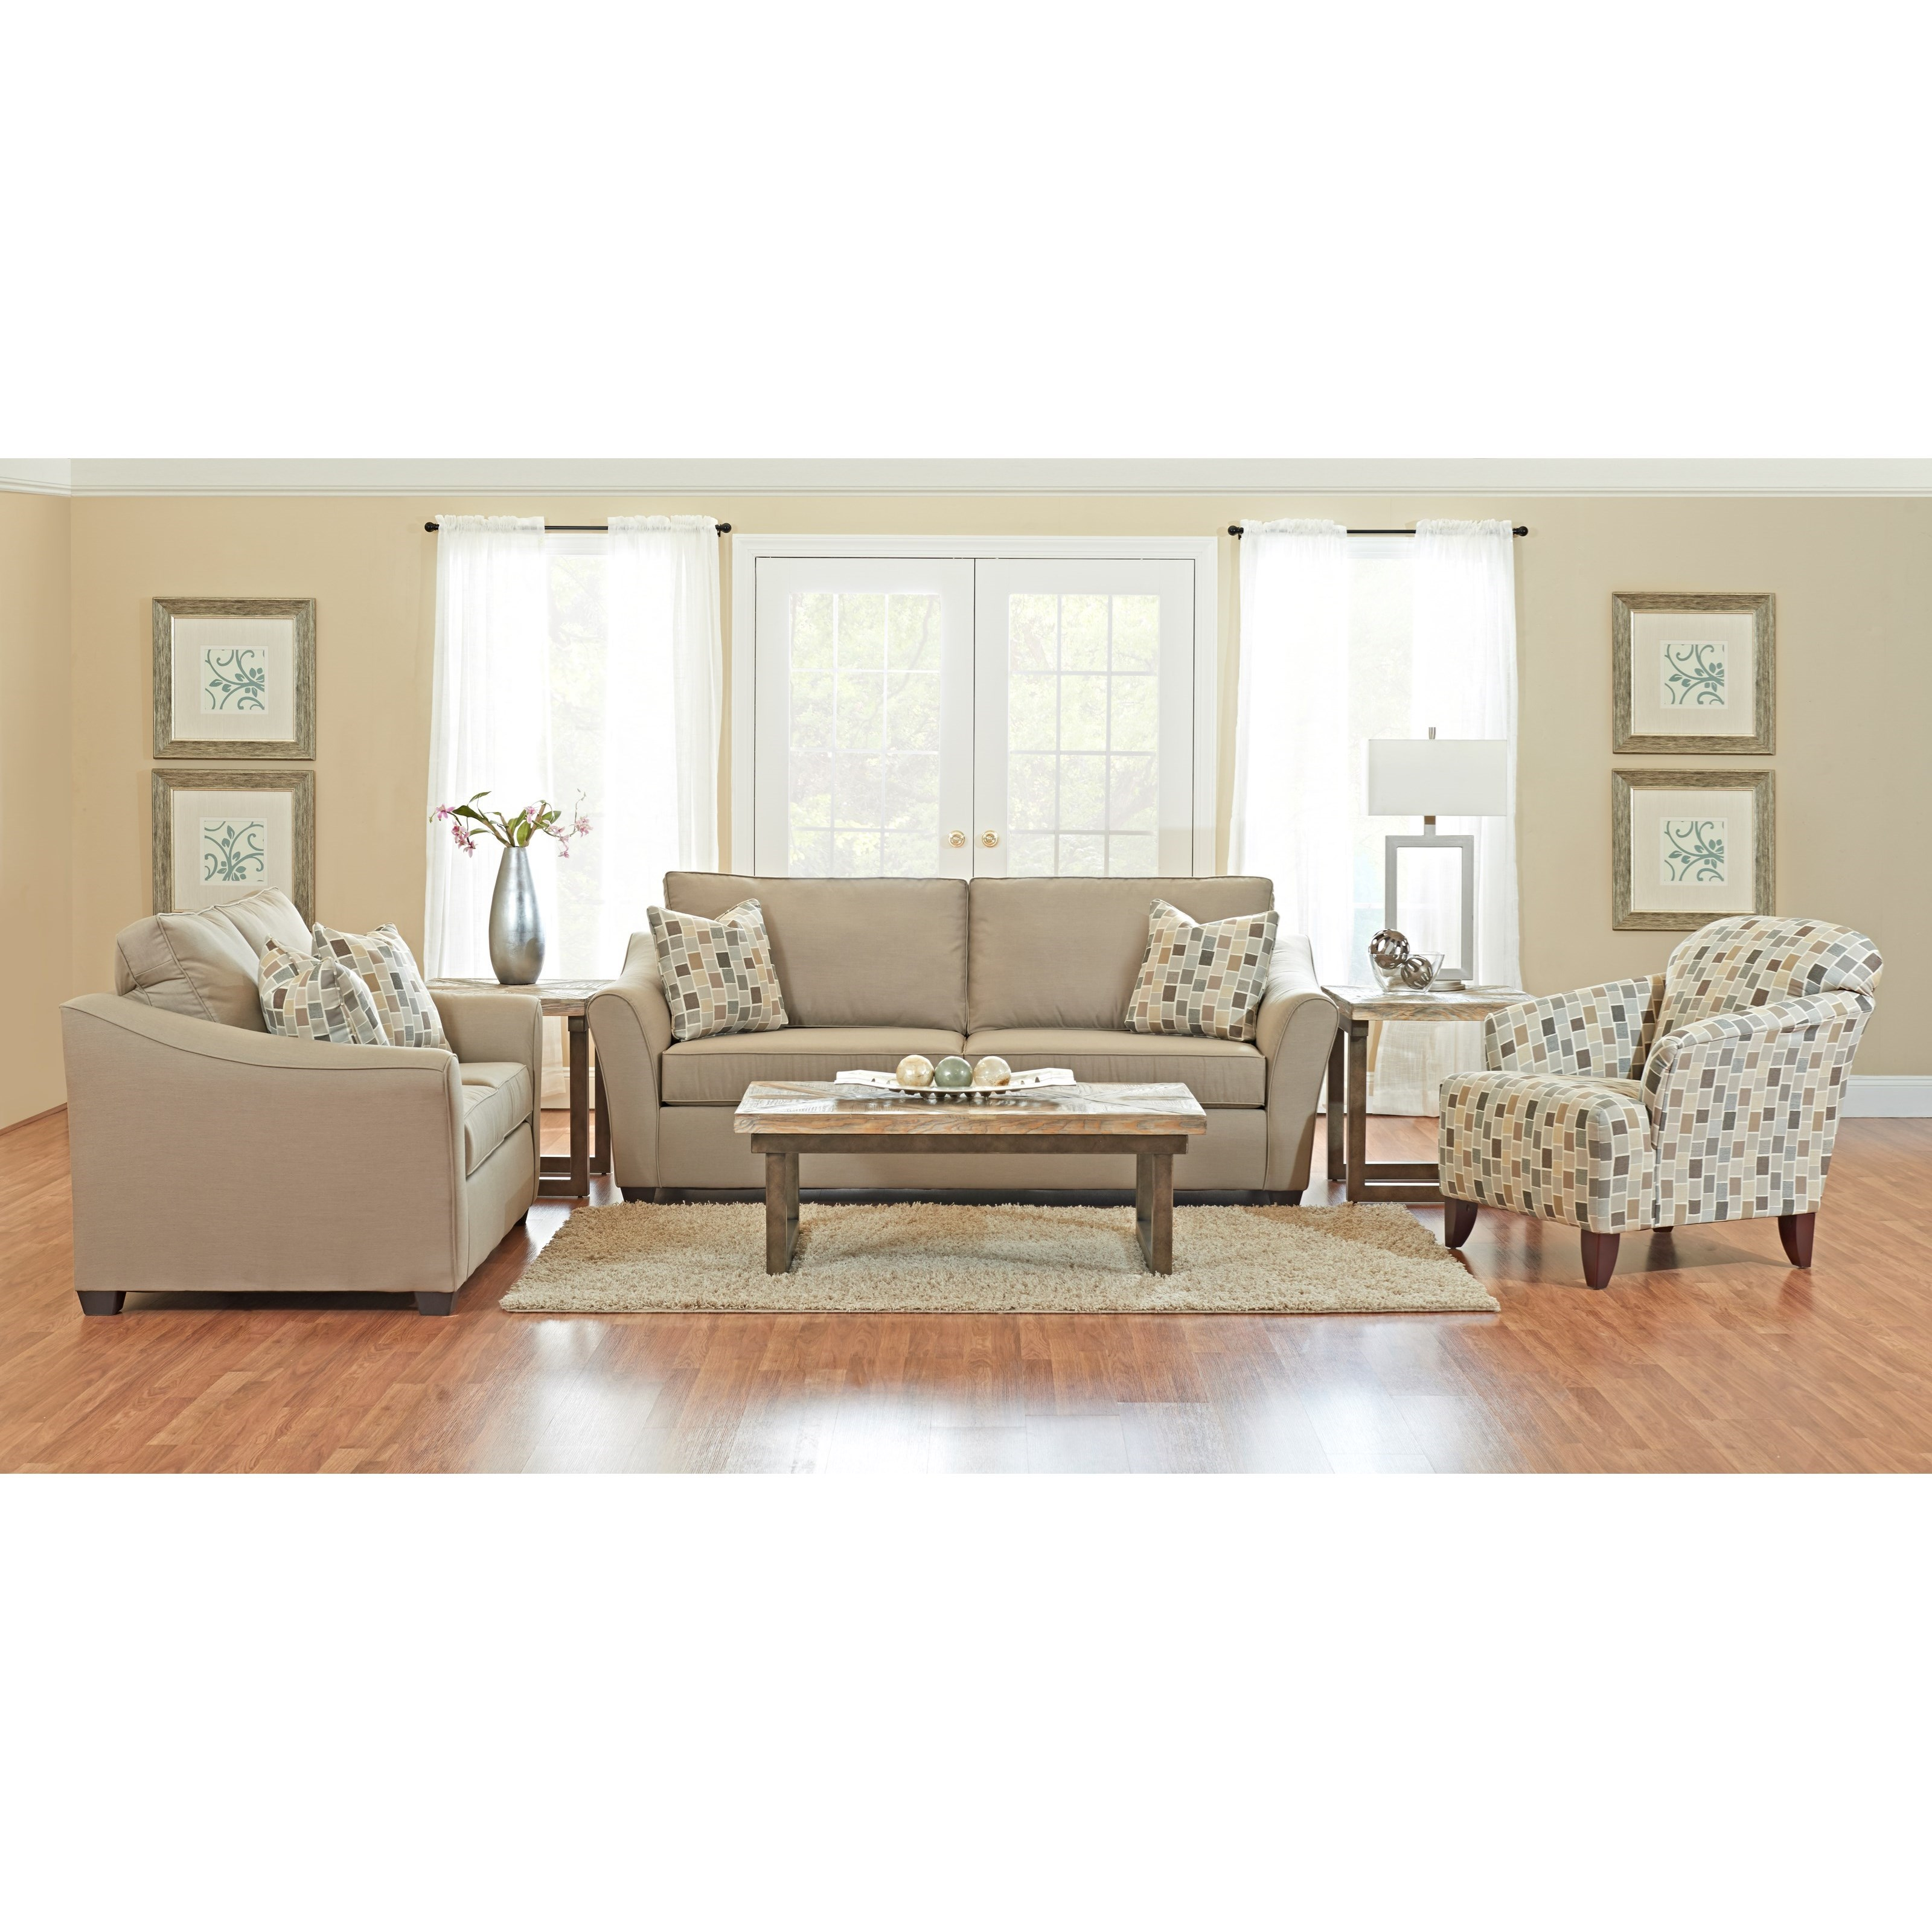 Klaussner linville living room group pilgrim furniture for Living room furniture groups